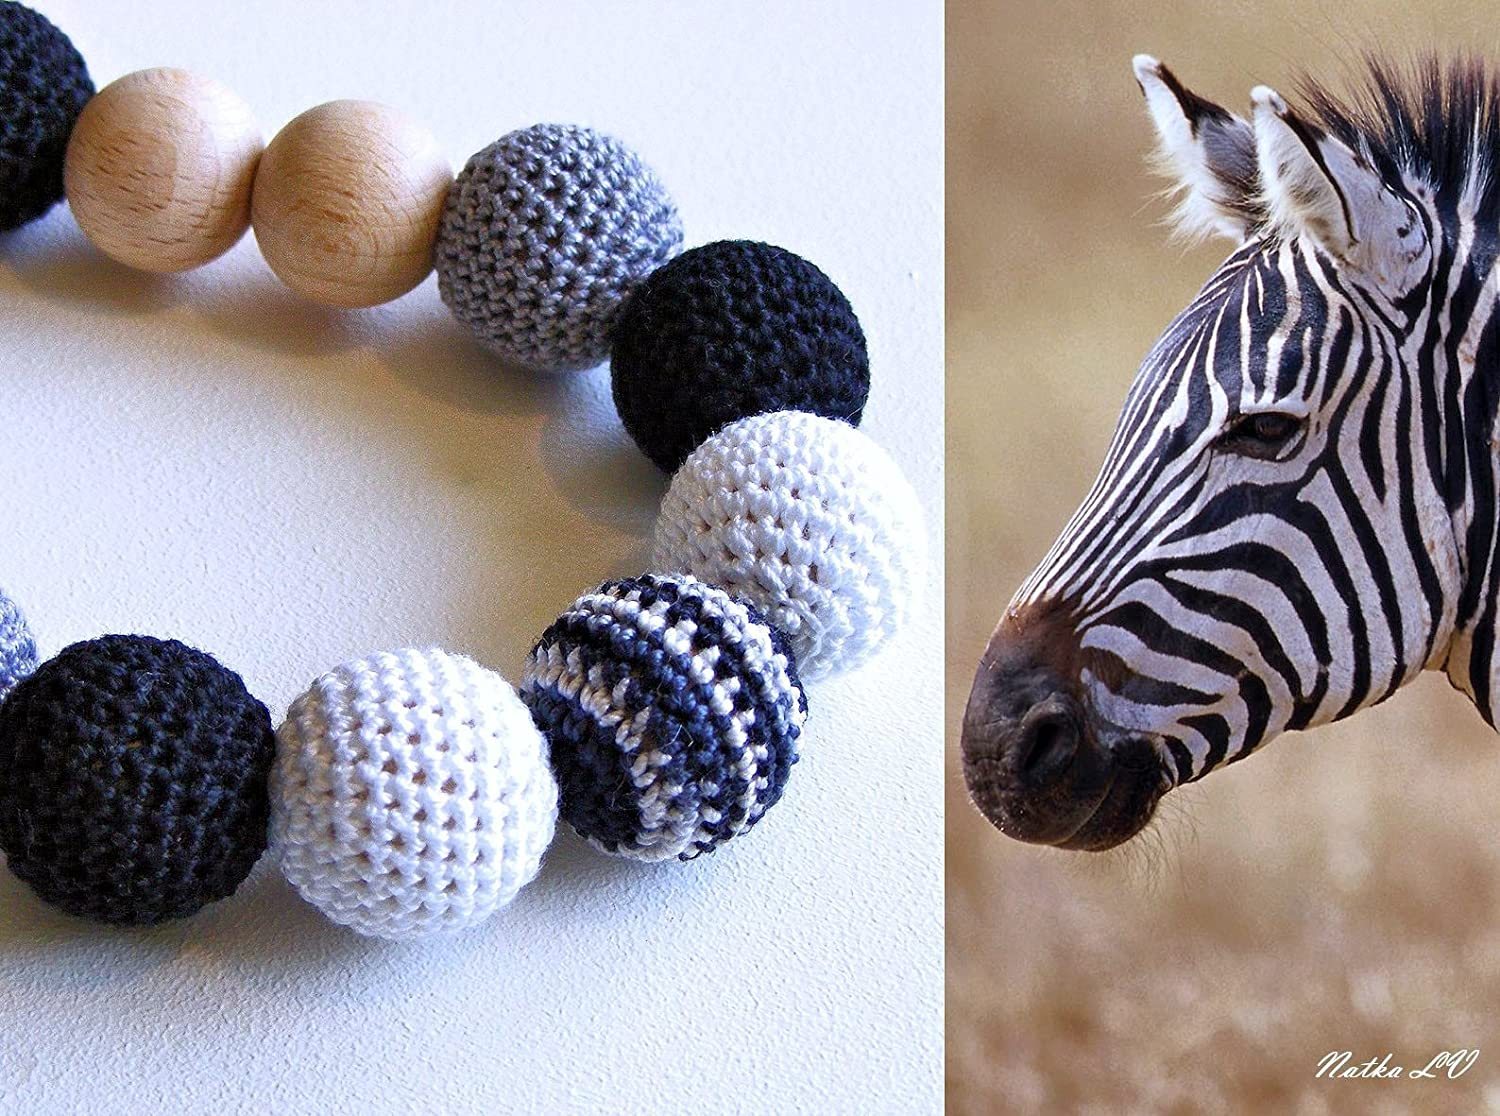 Teething necklace Zebra, nursing necklace, breastfeeding necklace, crochet wooden necklace, women's jewelry, natural, black white grey, mom necklace, shower gift, new baby necklace women's jewelry